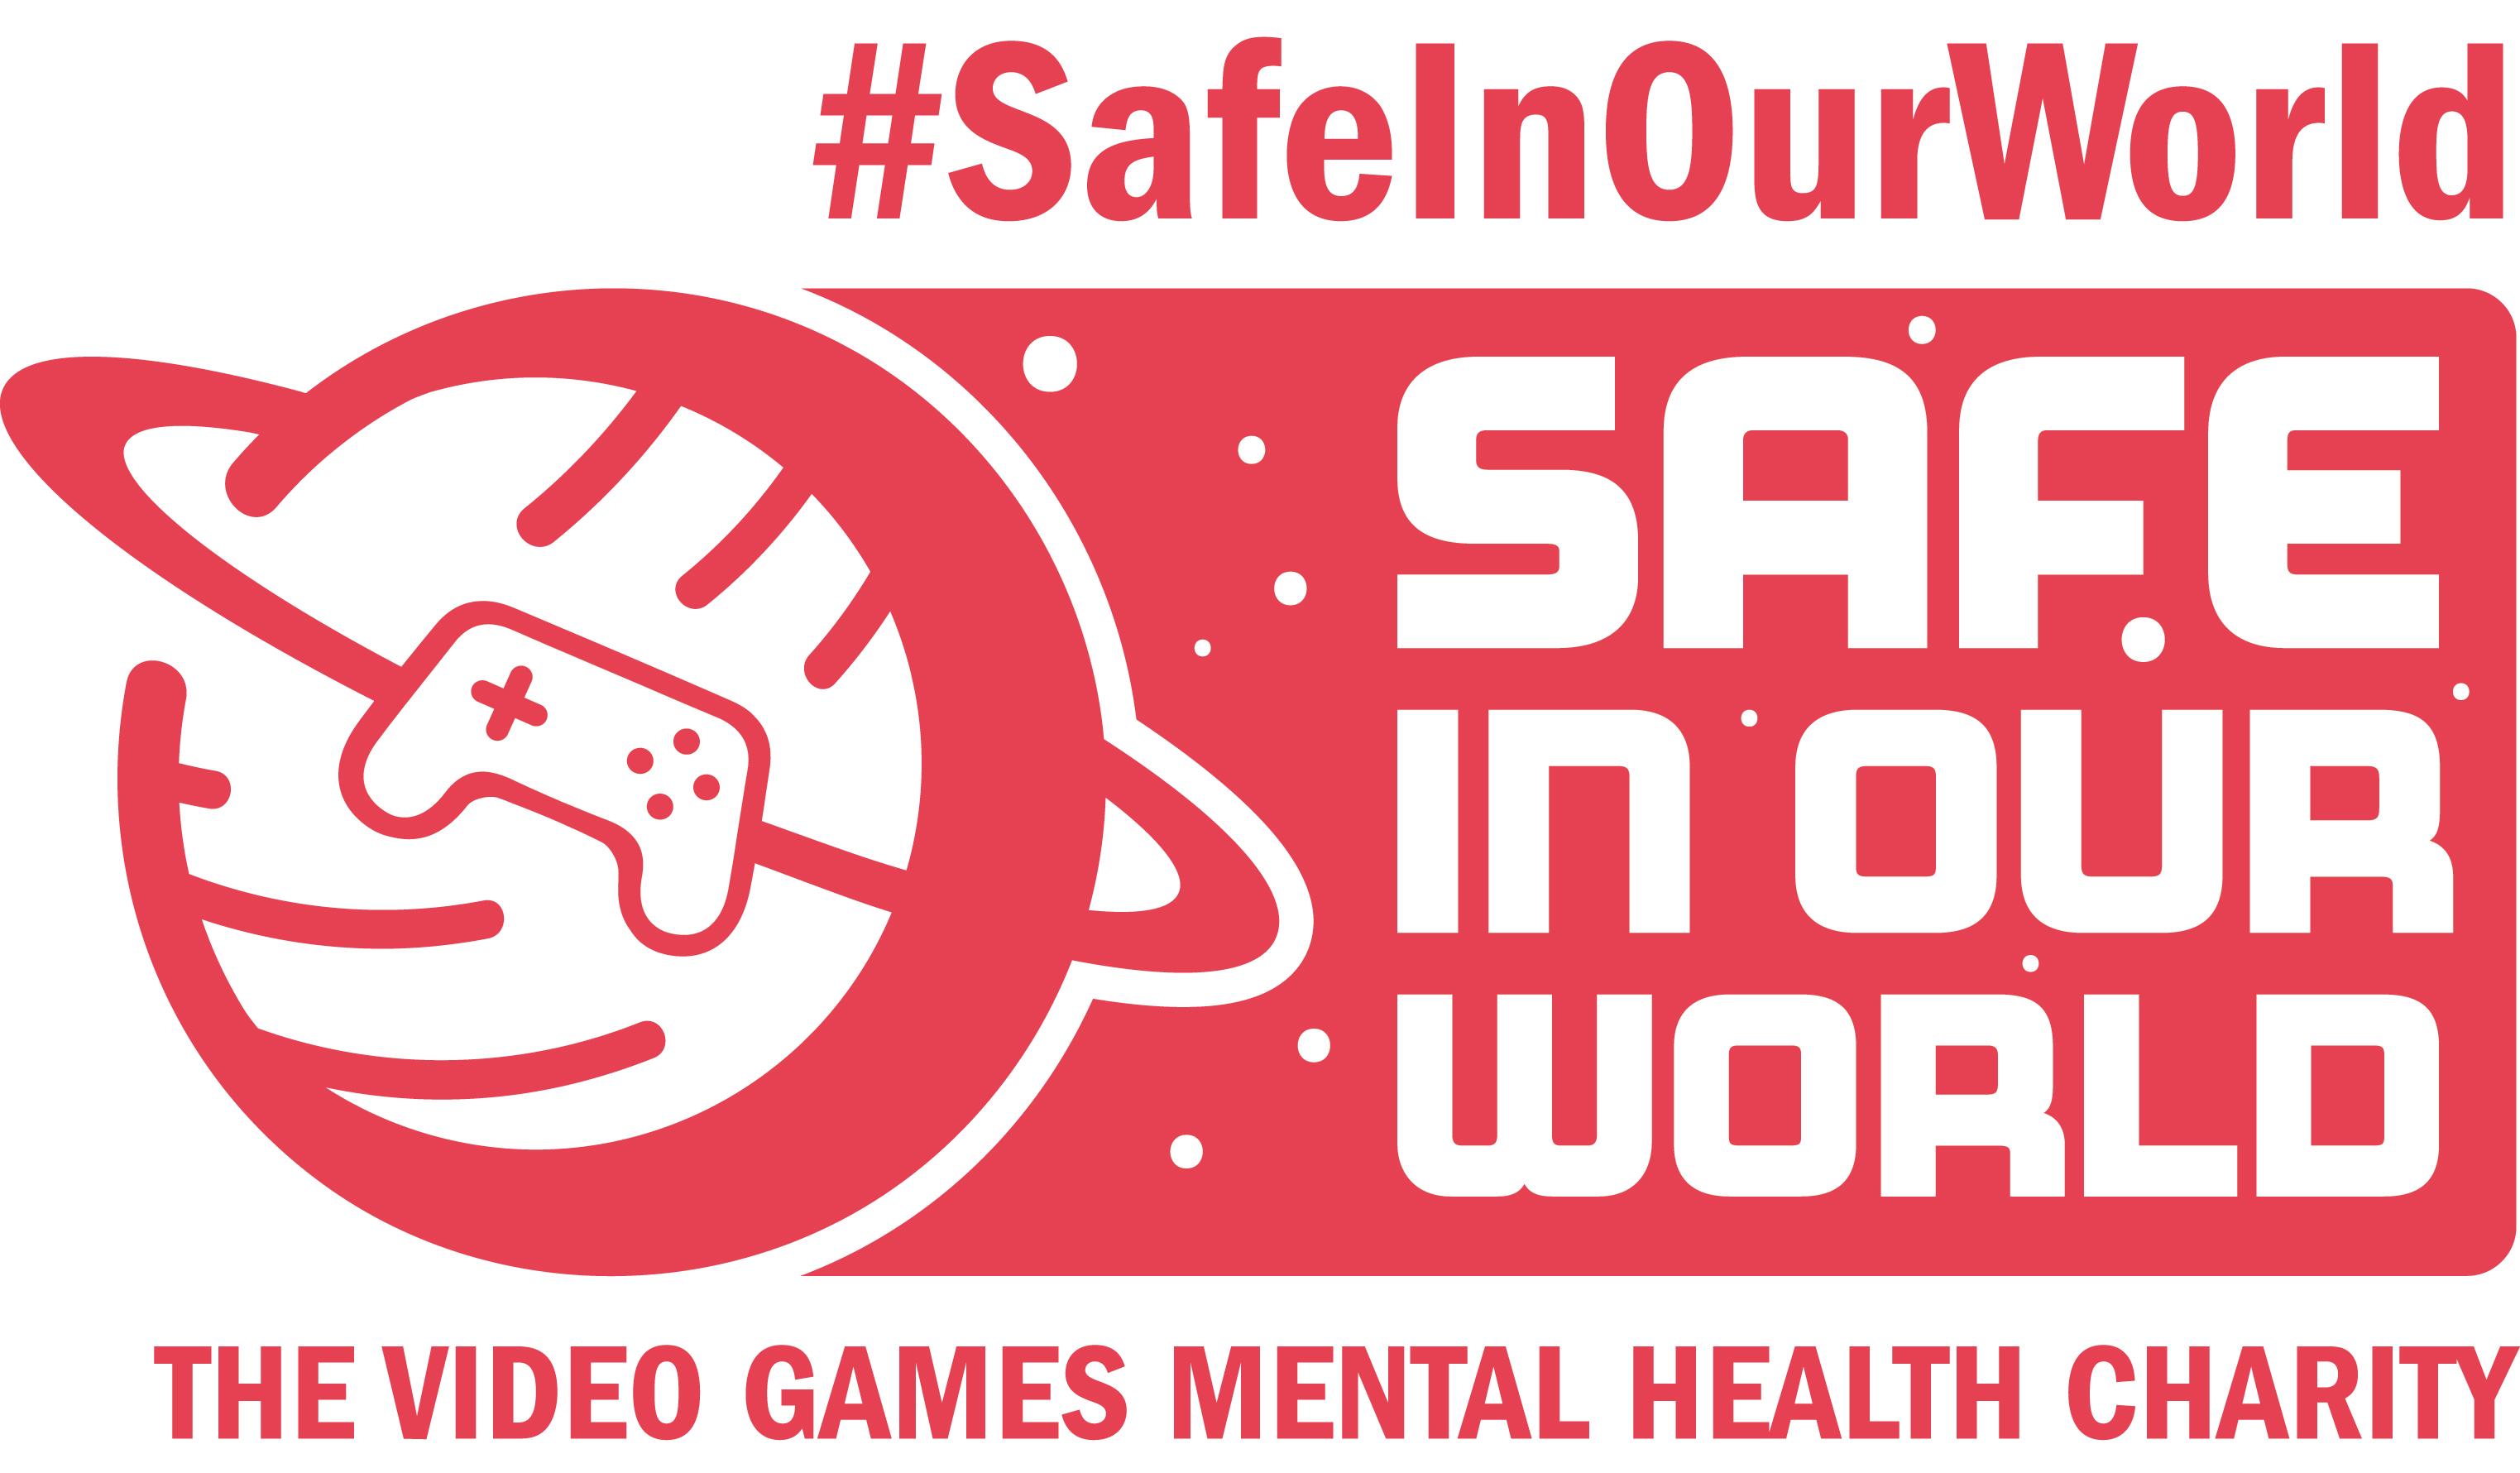 Safe in our world the videogames mental health charity